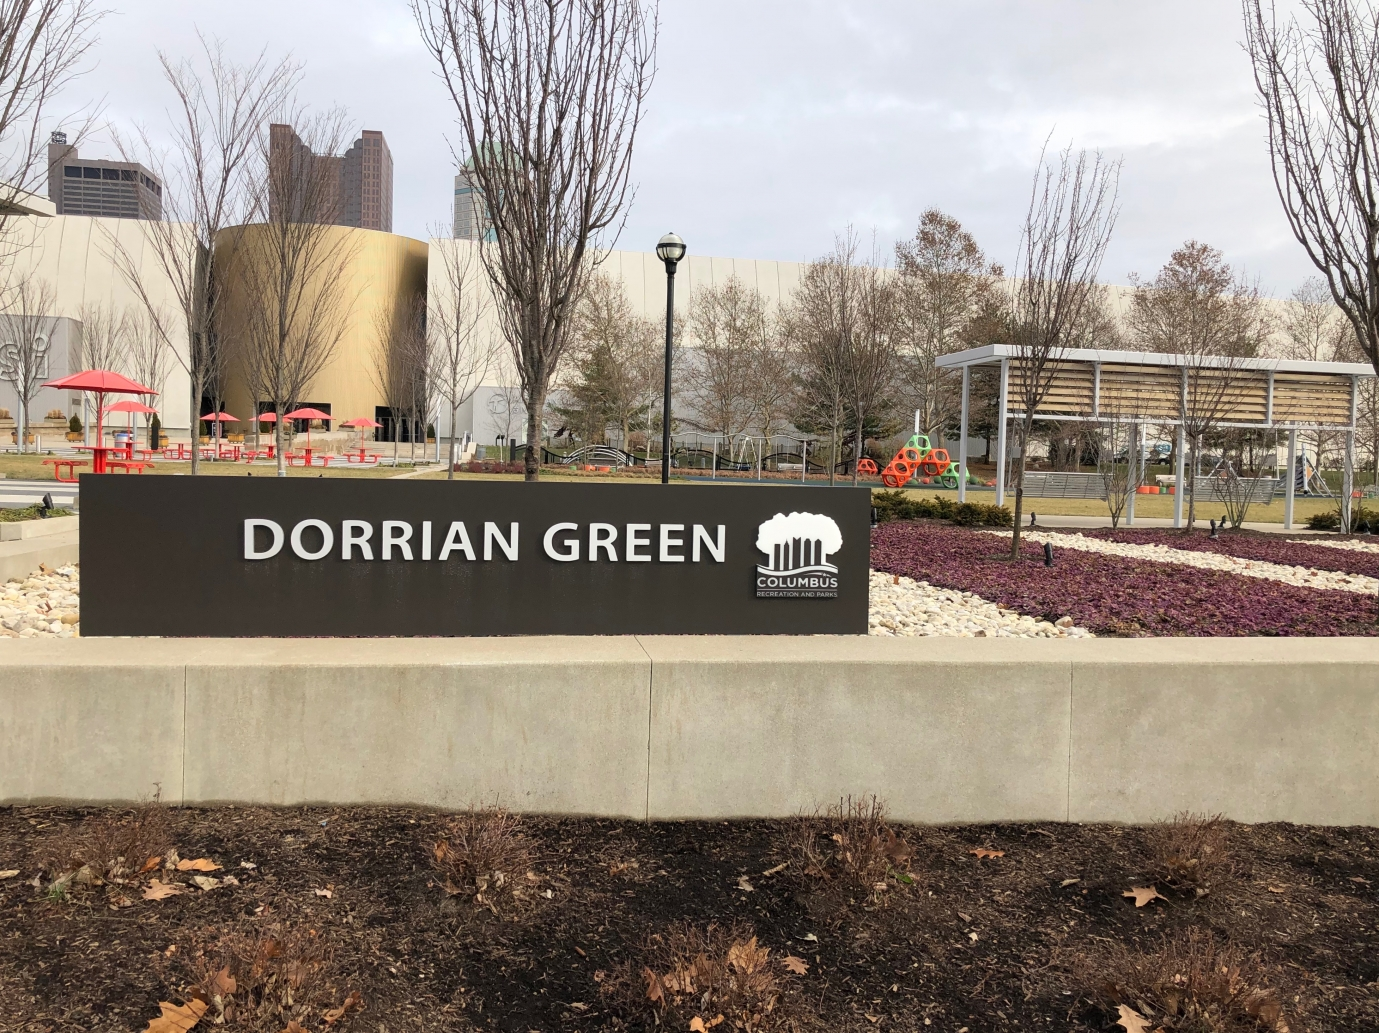 Dorrian Green outside COSI